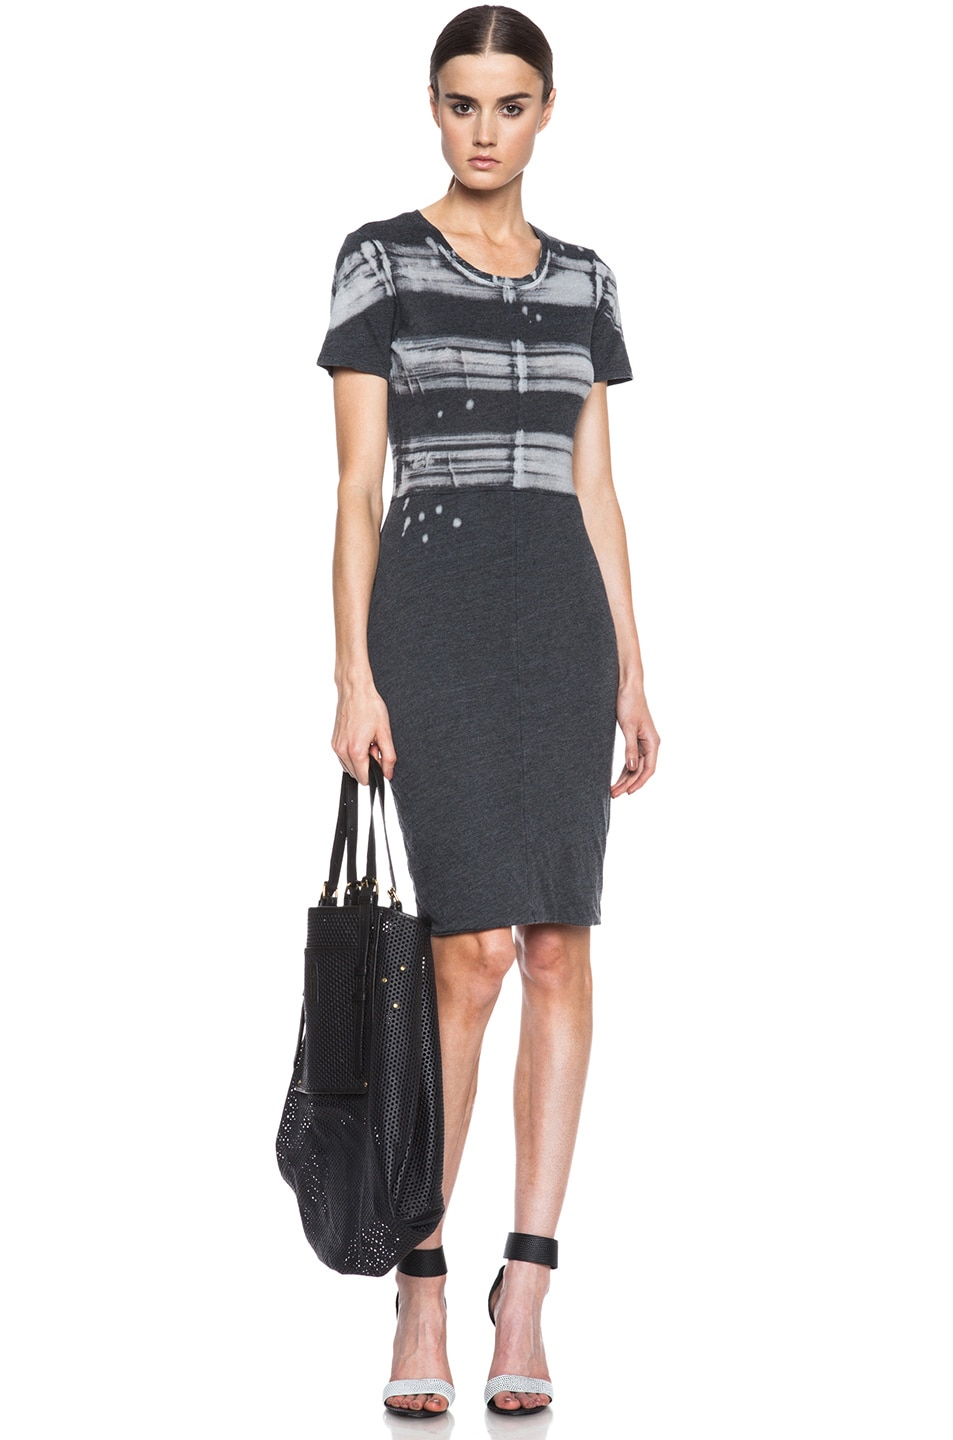 Image 1 of Raquel Allegra Cotton-Blend Cocktail Dress in Painter Stripe Black